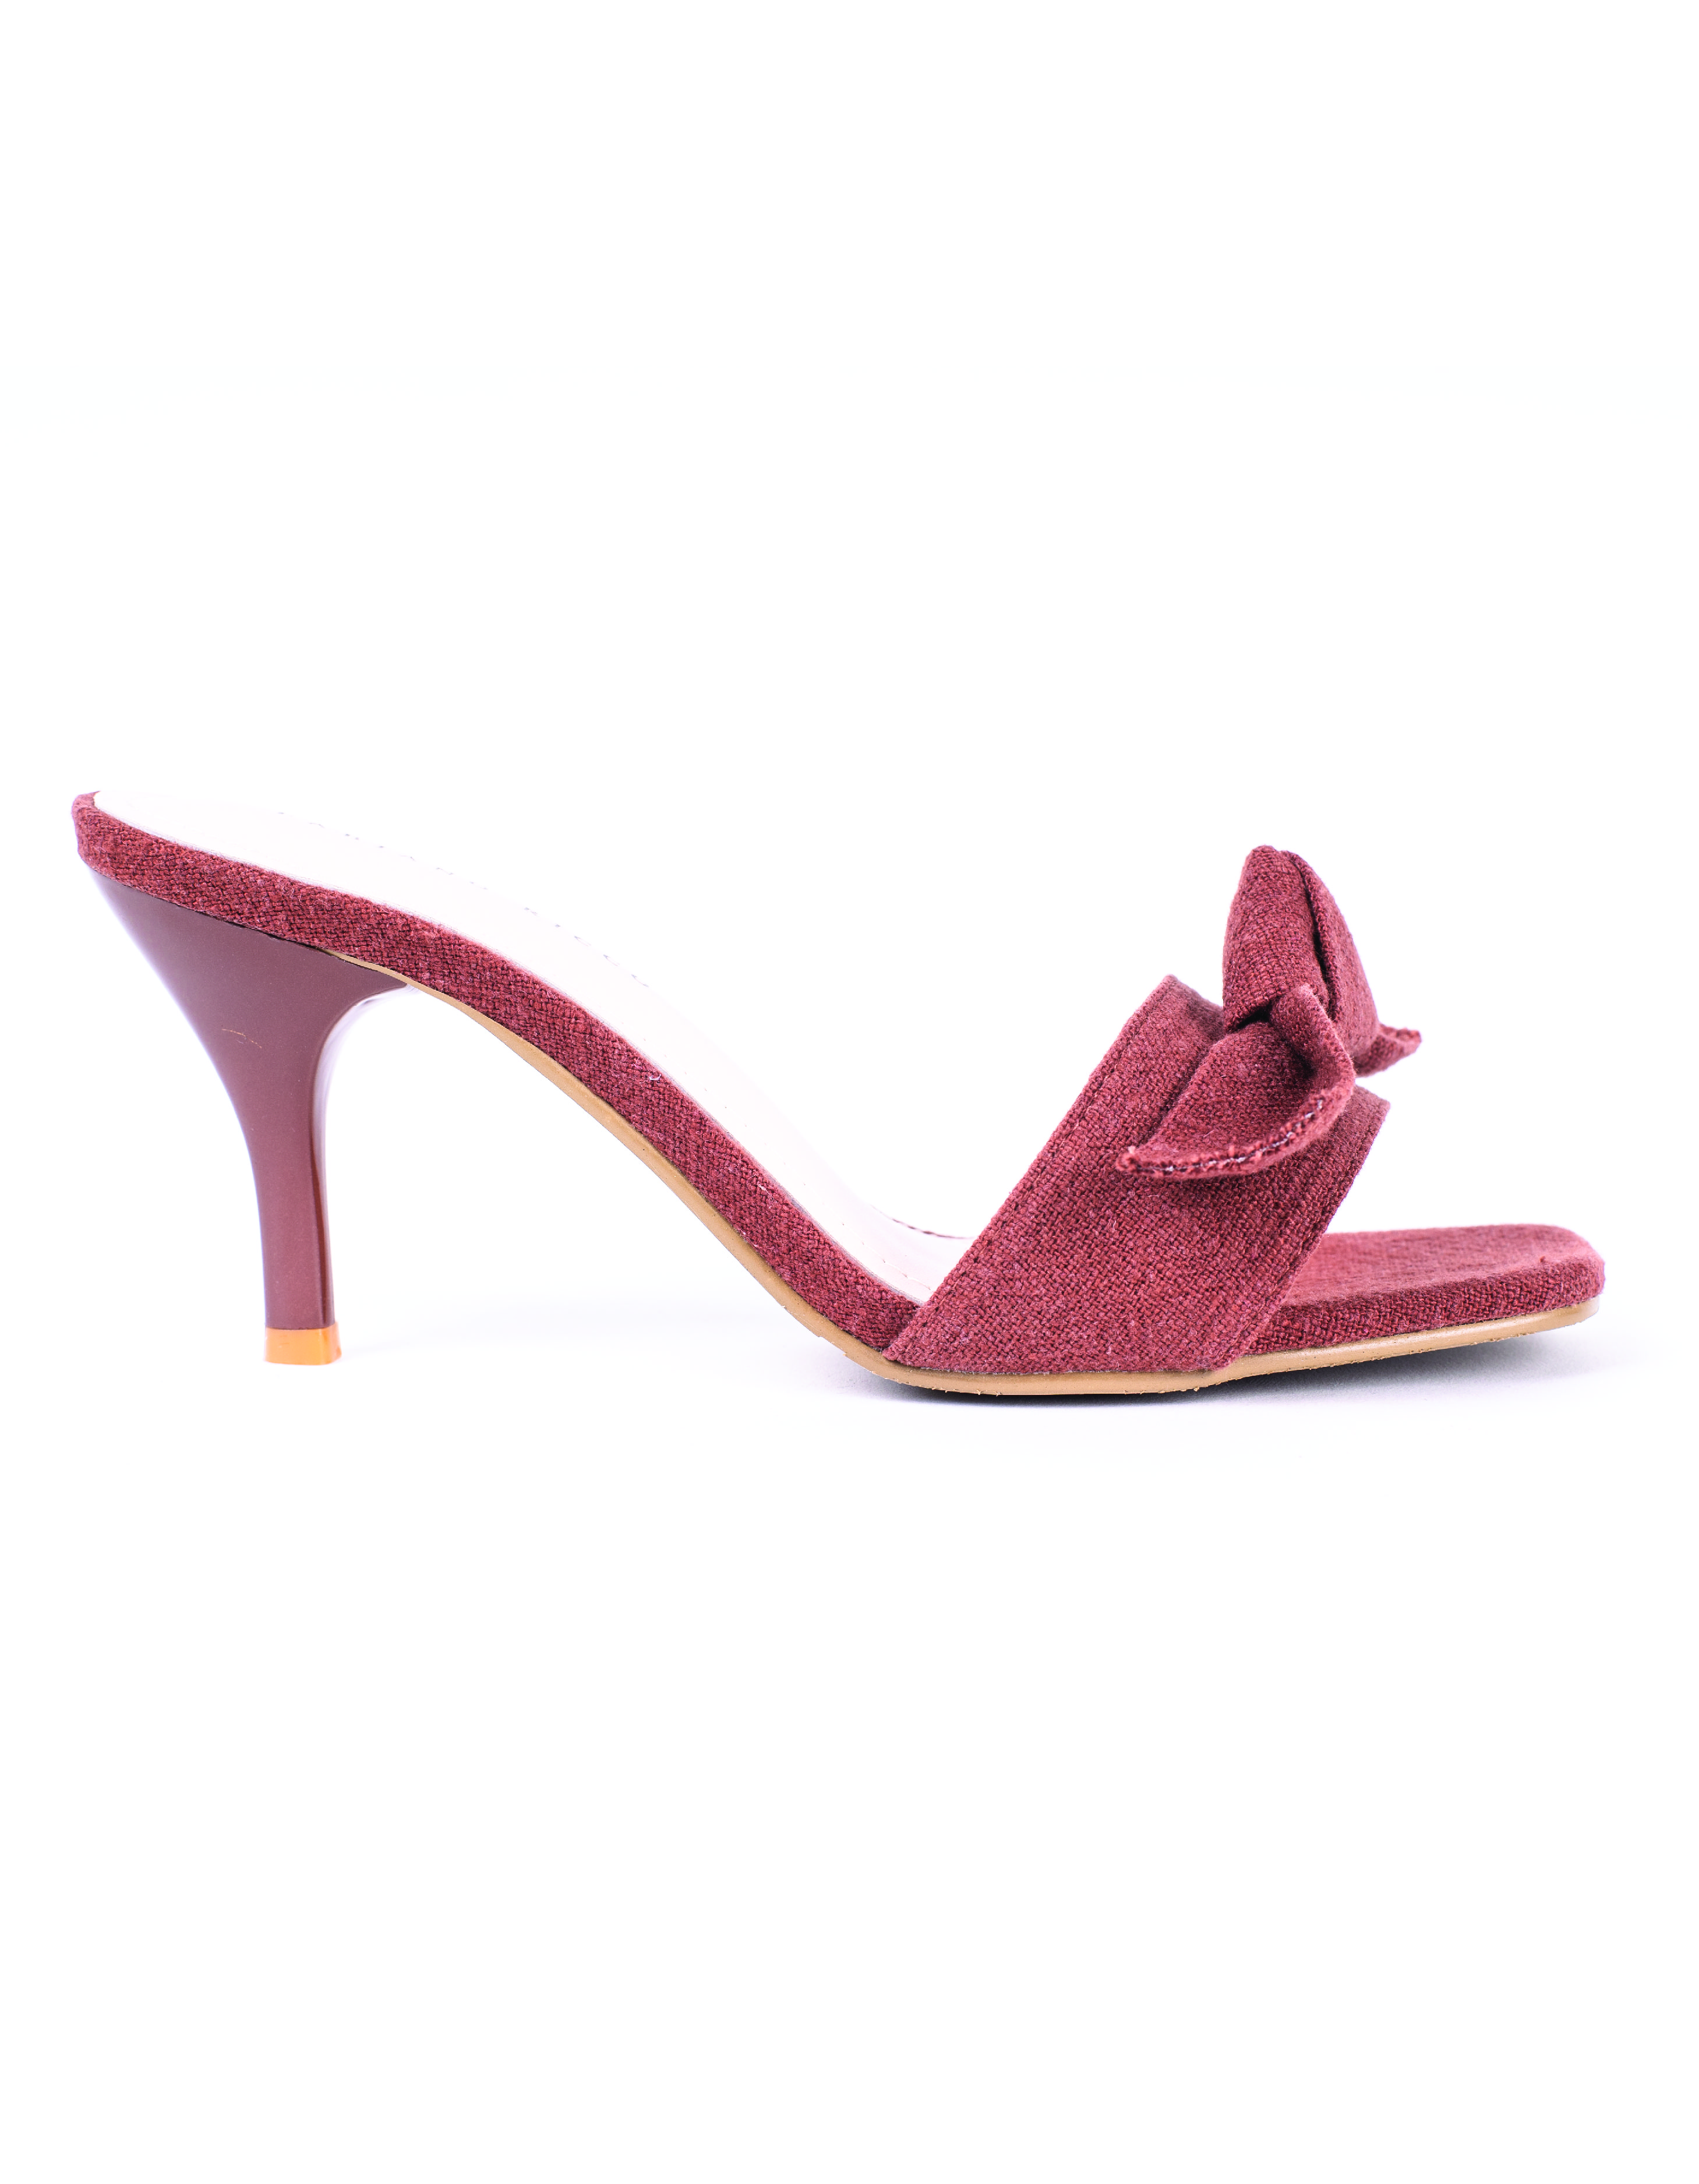 RIBBON DETAILED SQUARE HEADED MULES #26023